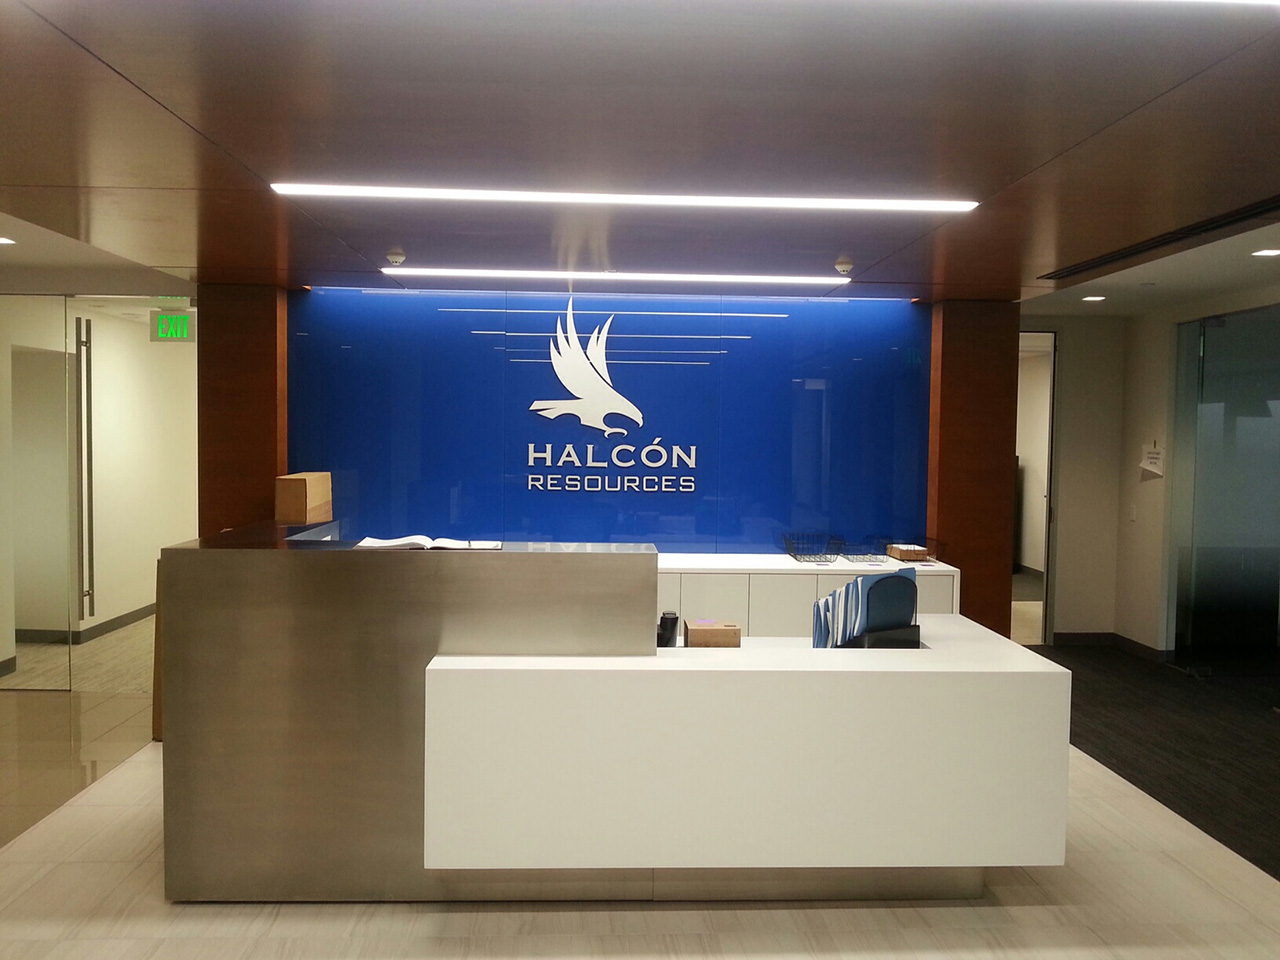 Halcon Resources Reception Desk.jpeg